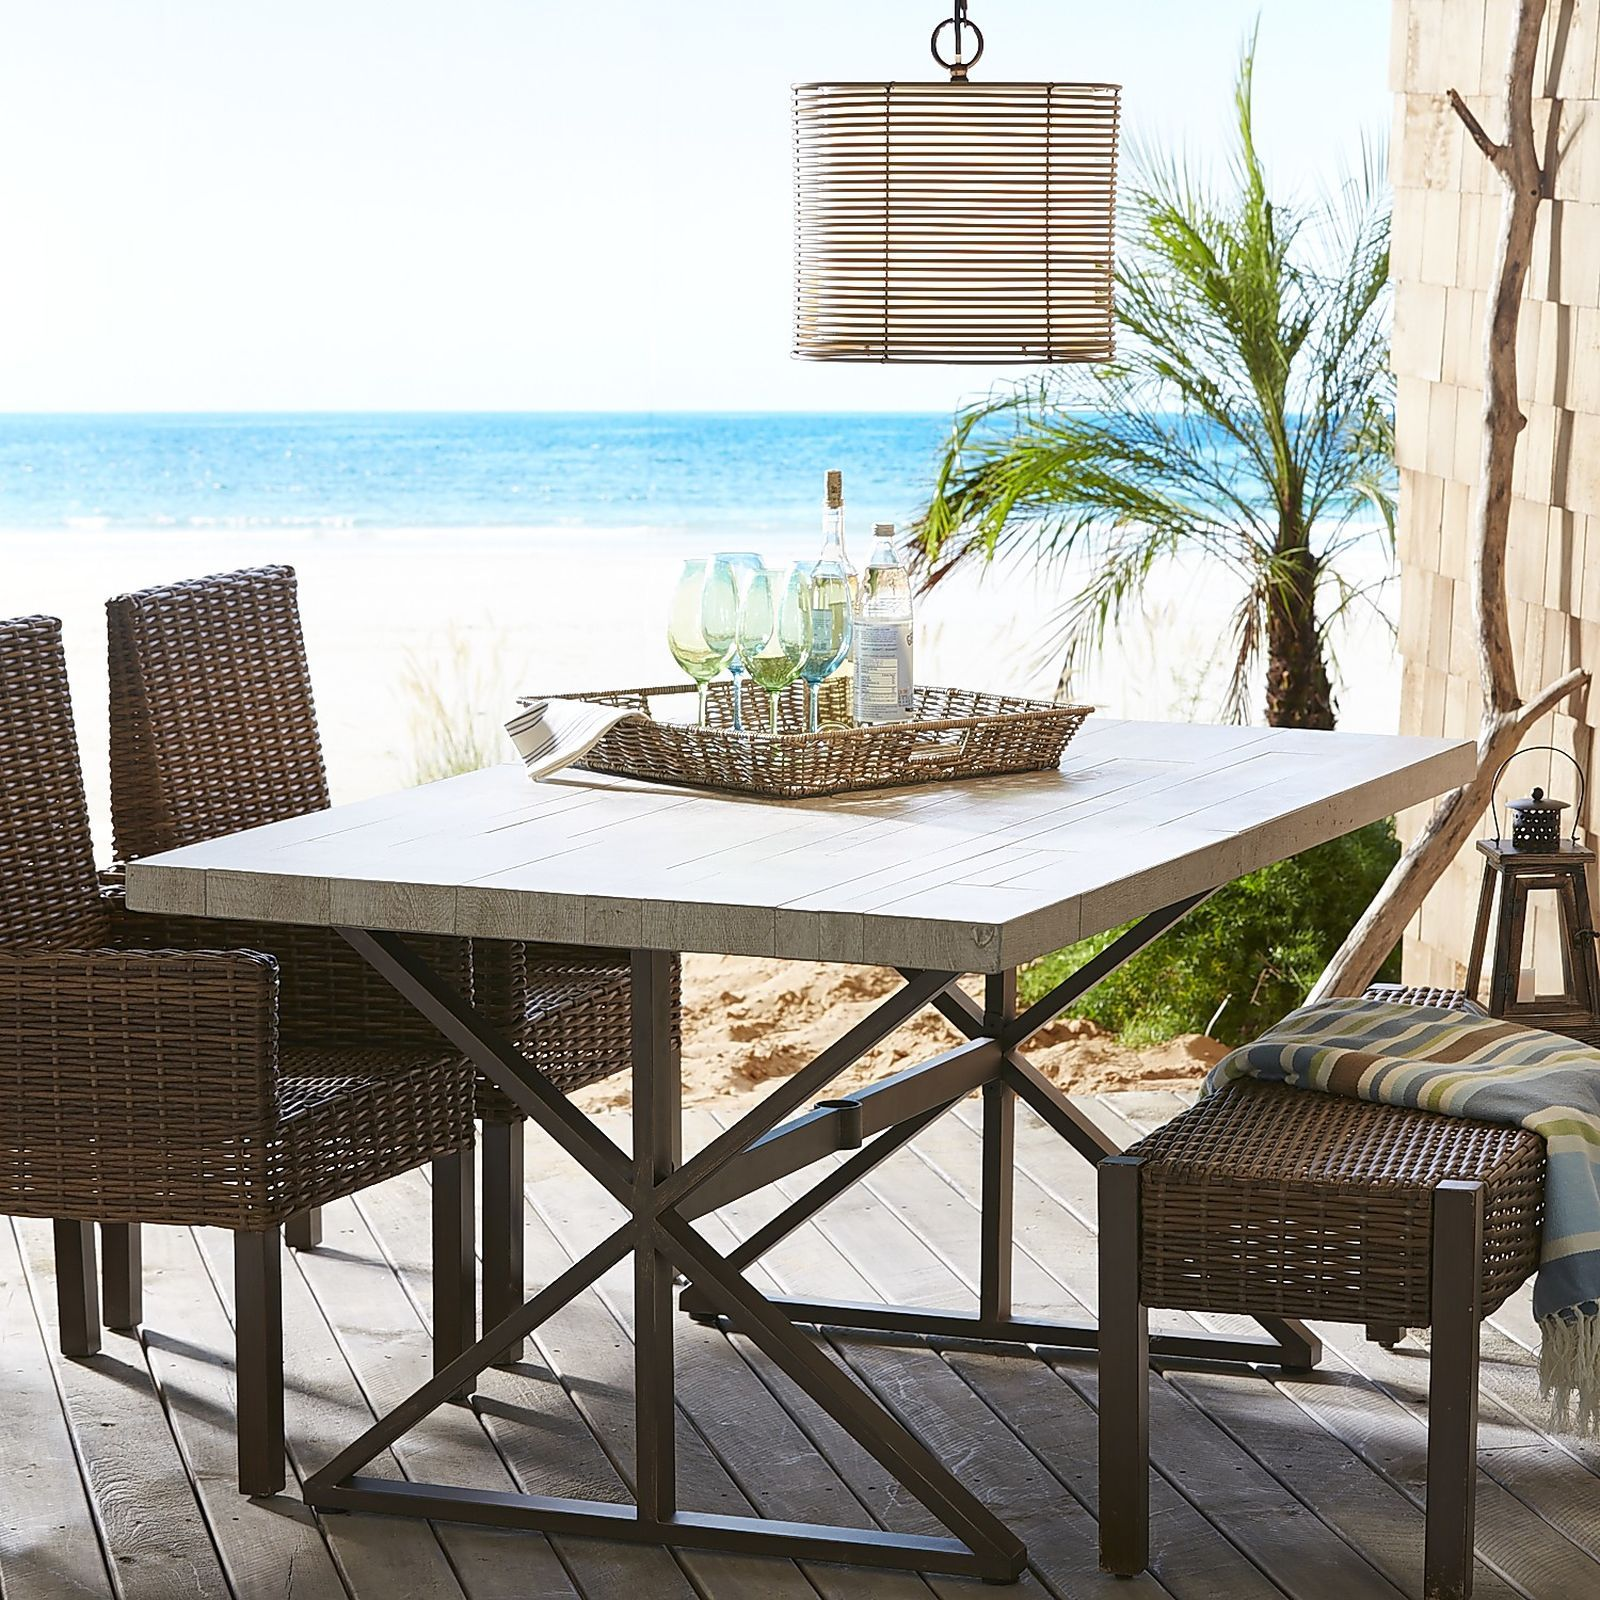 Paxson Wood Grain Tile Dining Table